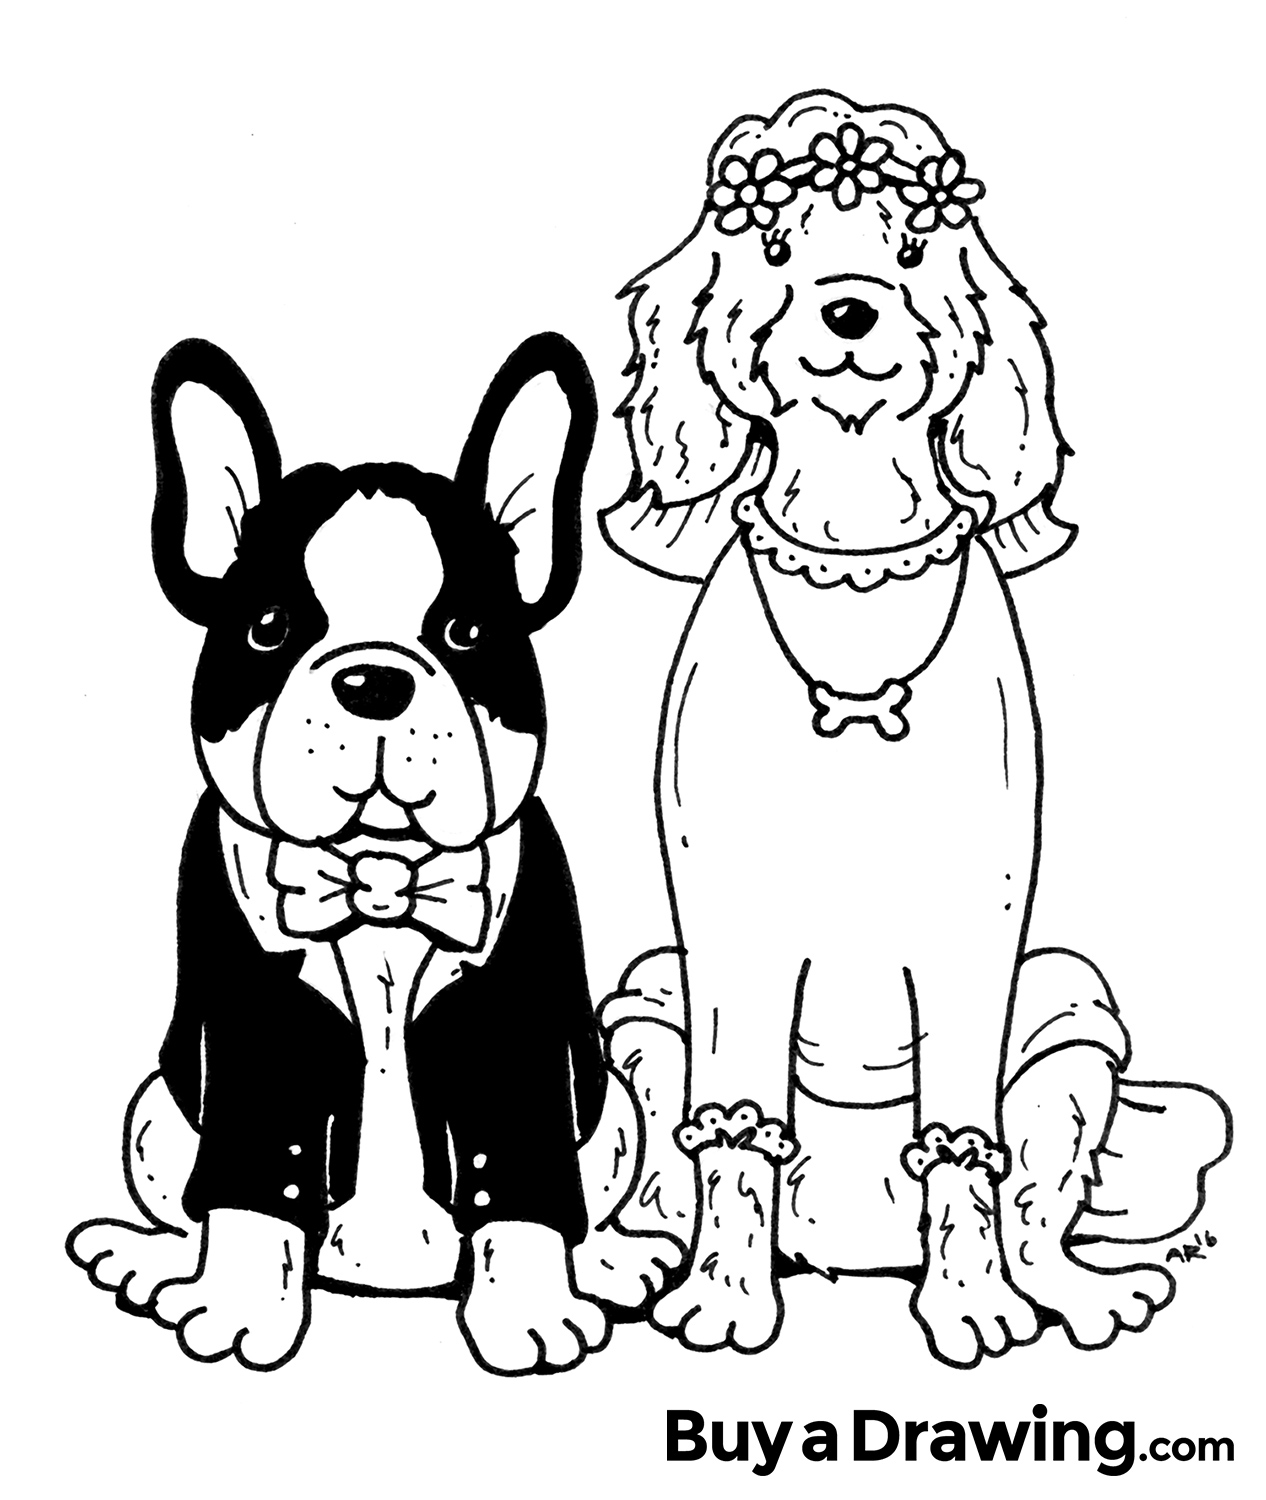 1266x1500 Cartoon Drawing Of Bride And Groom Dogs For Wedding Gifts